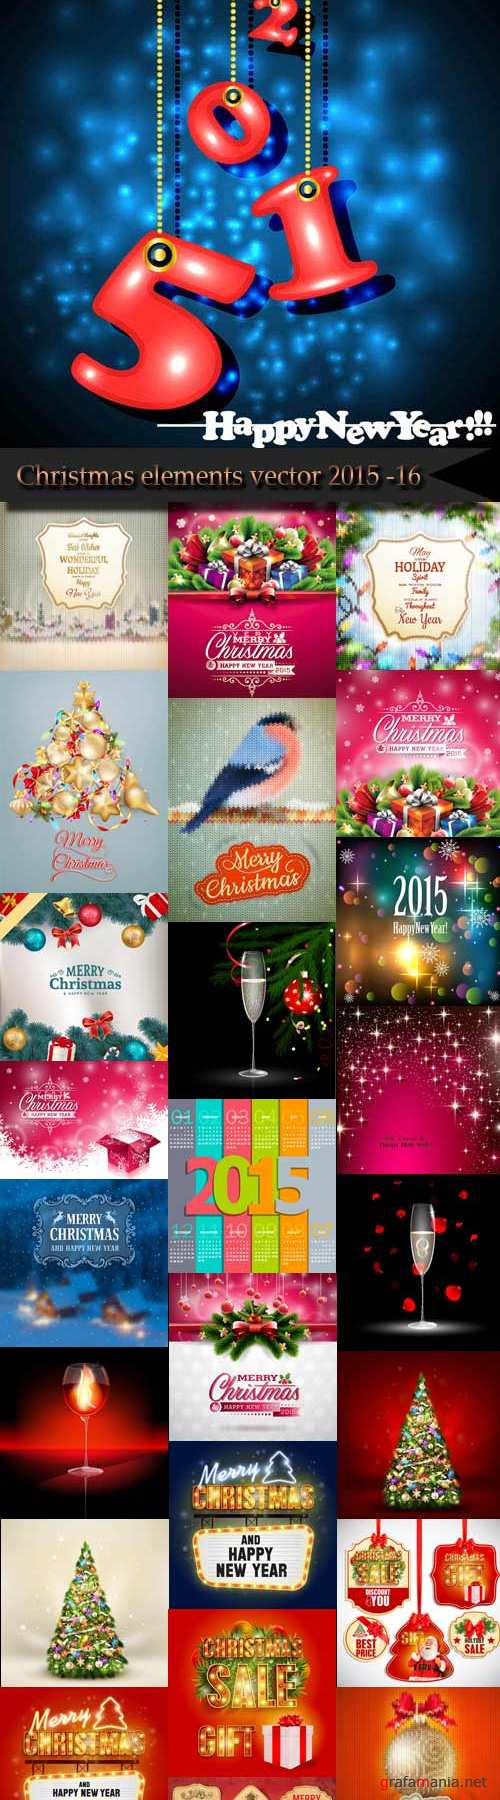 Christmas elements vector 2015 -16